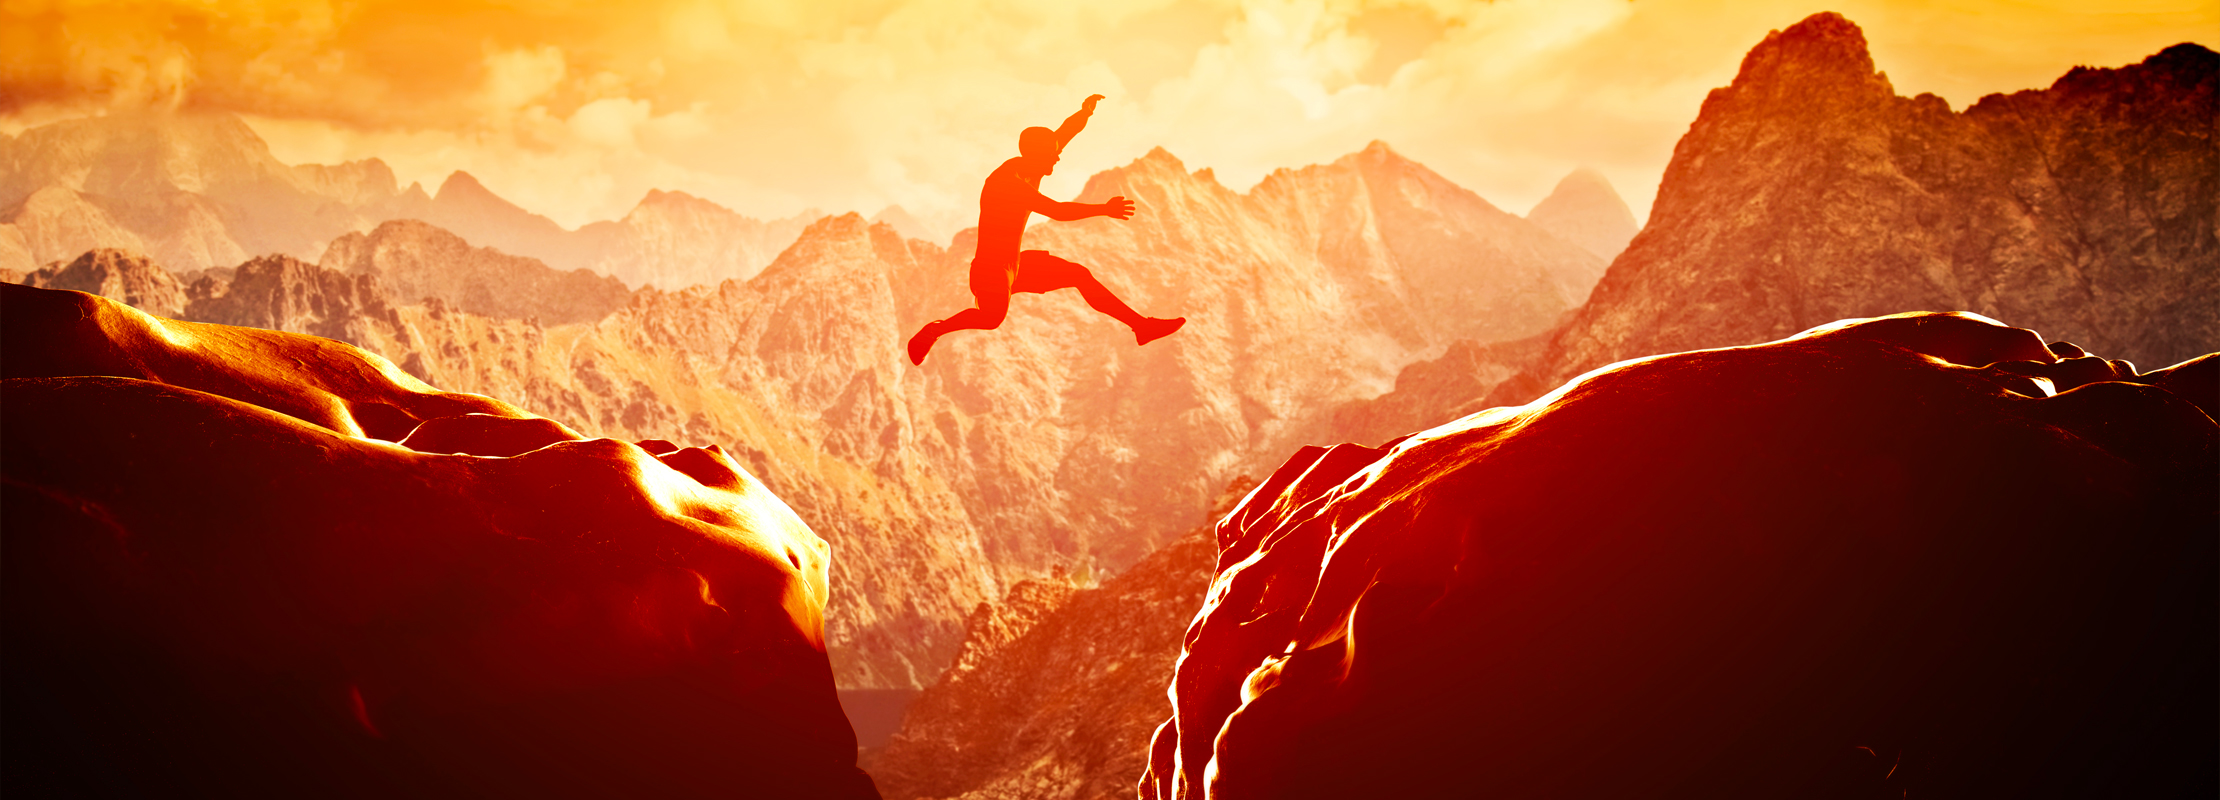 Image of a man jumping between two rocks.